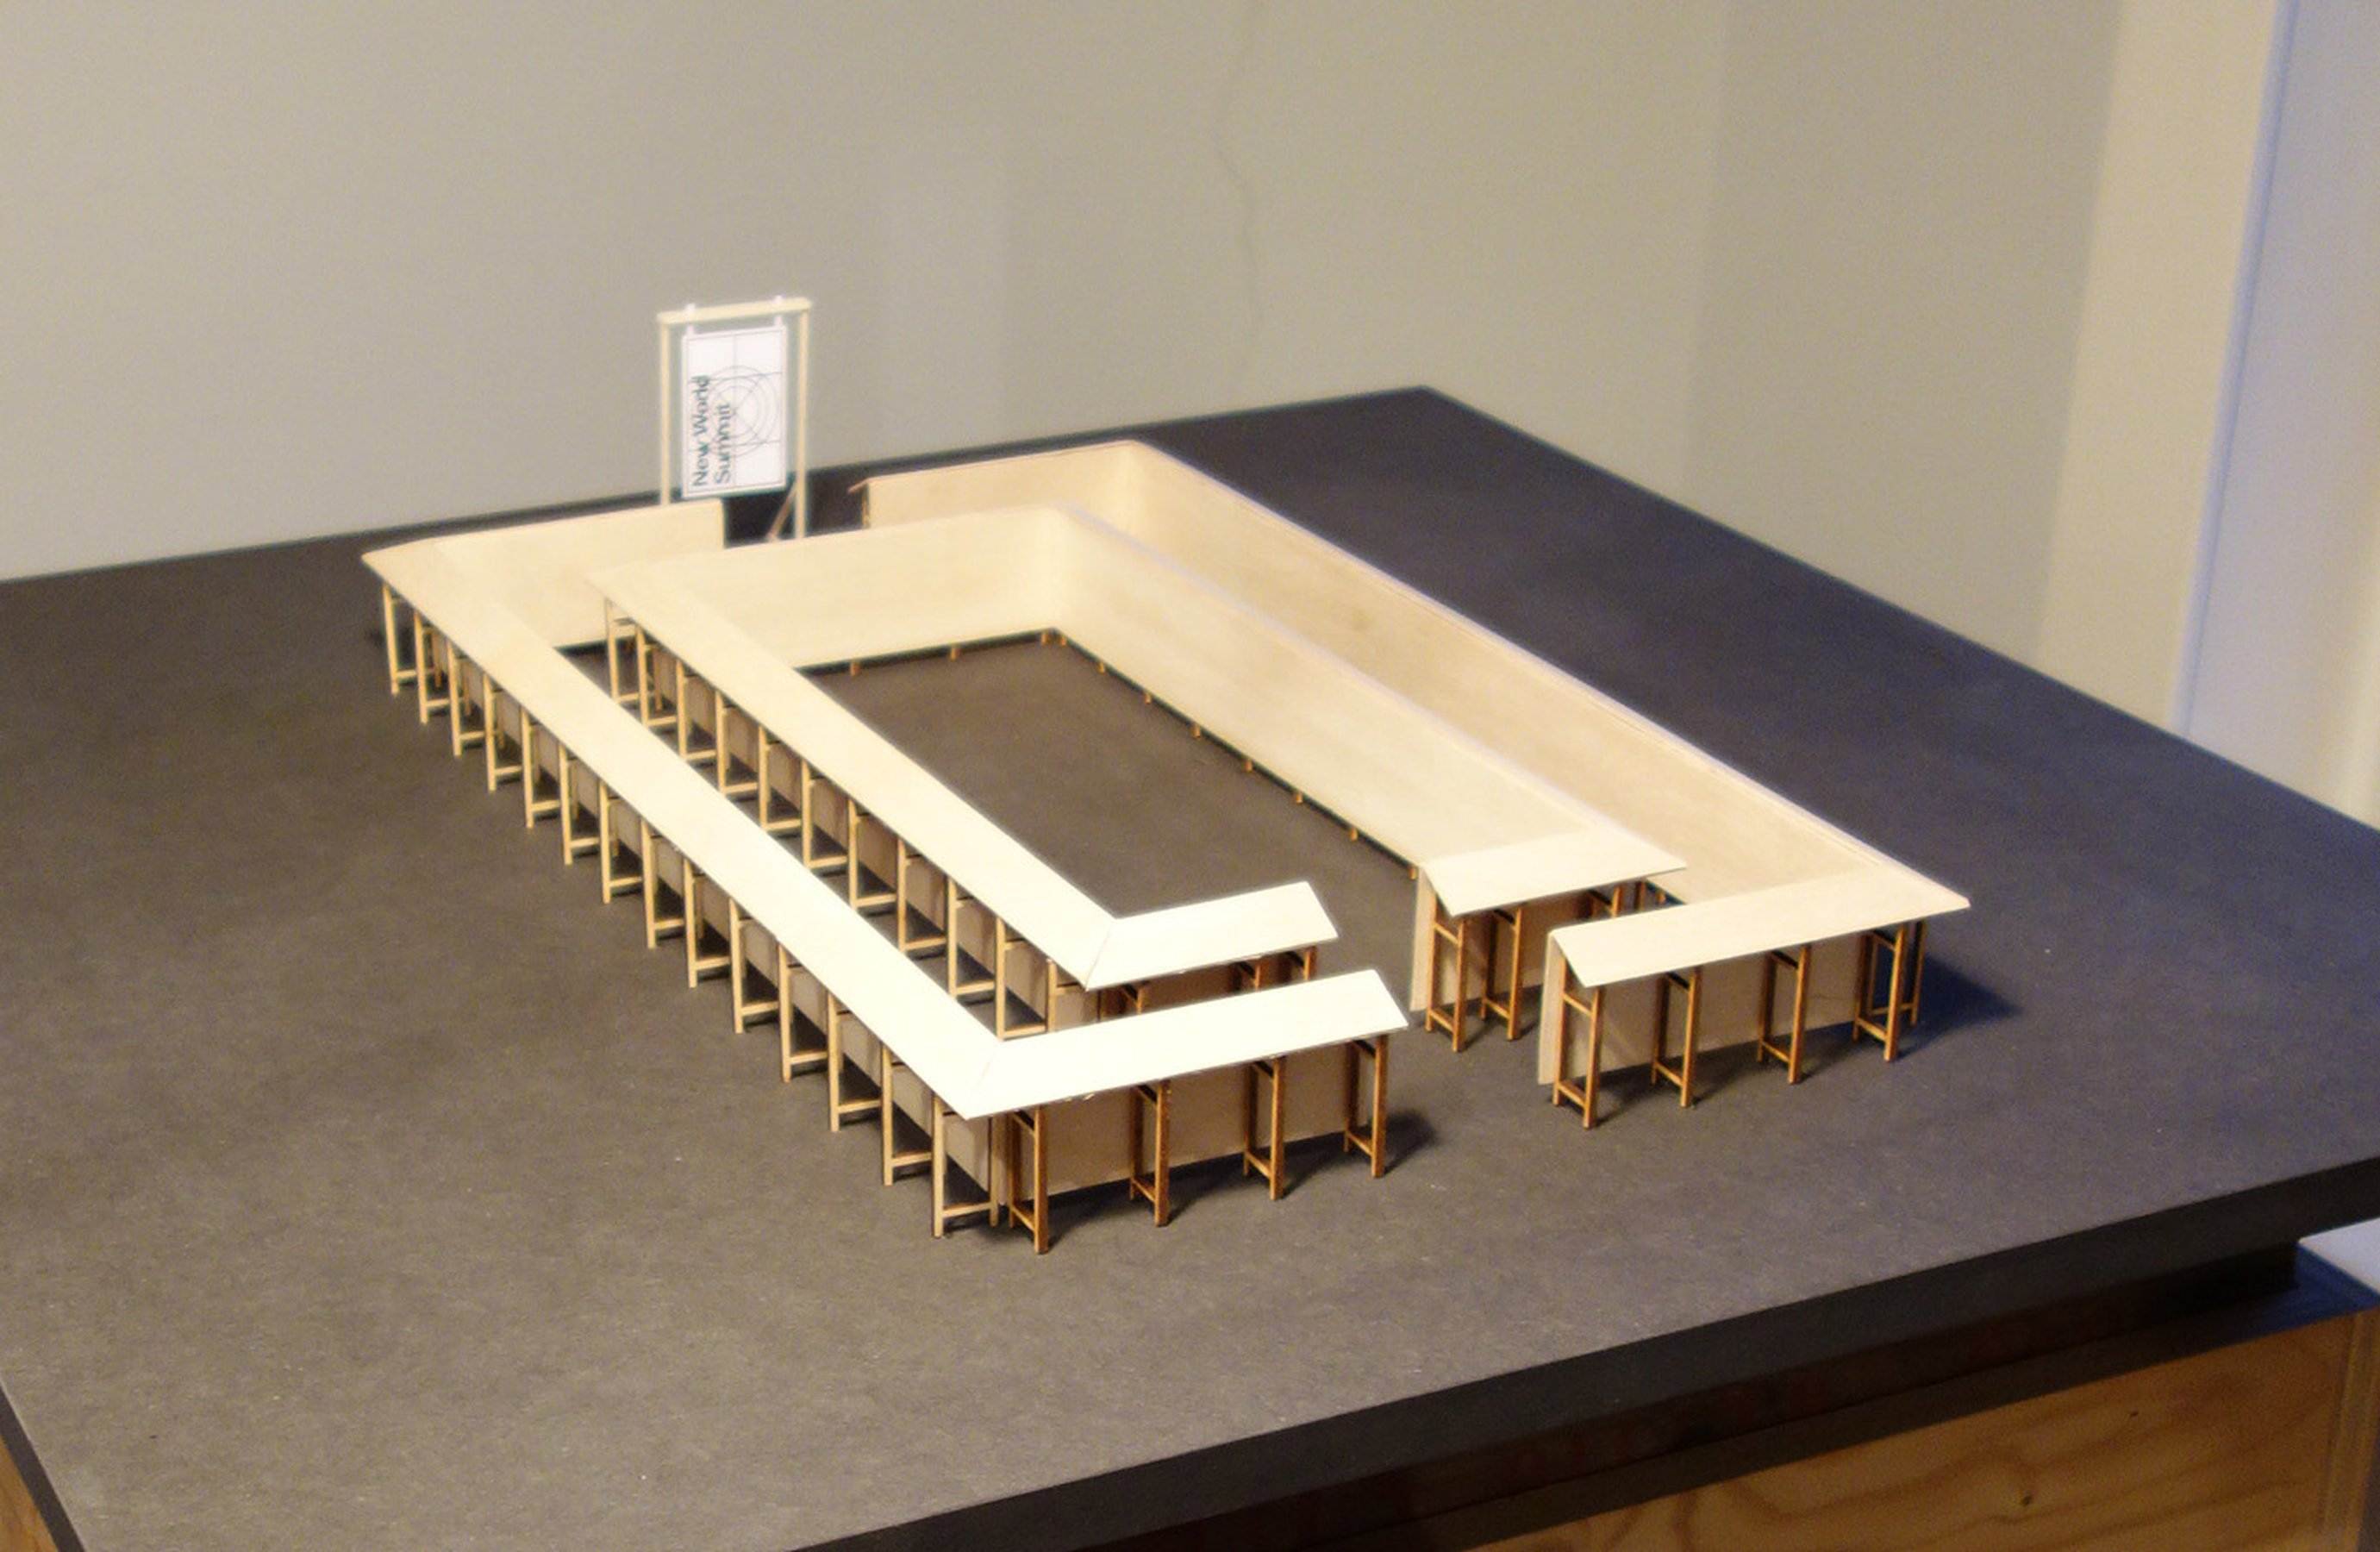 New World Summit - Leiden (architectural model)